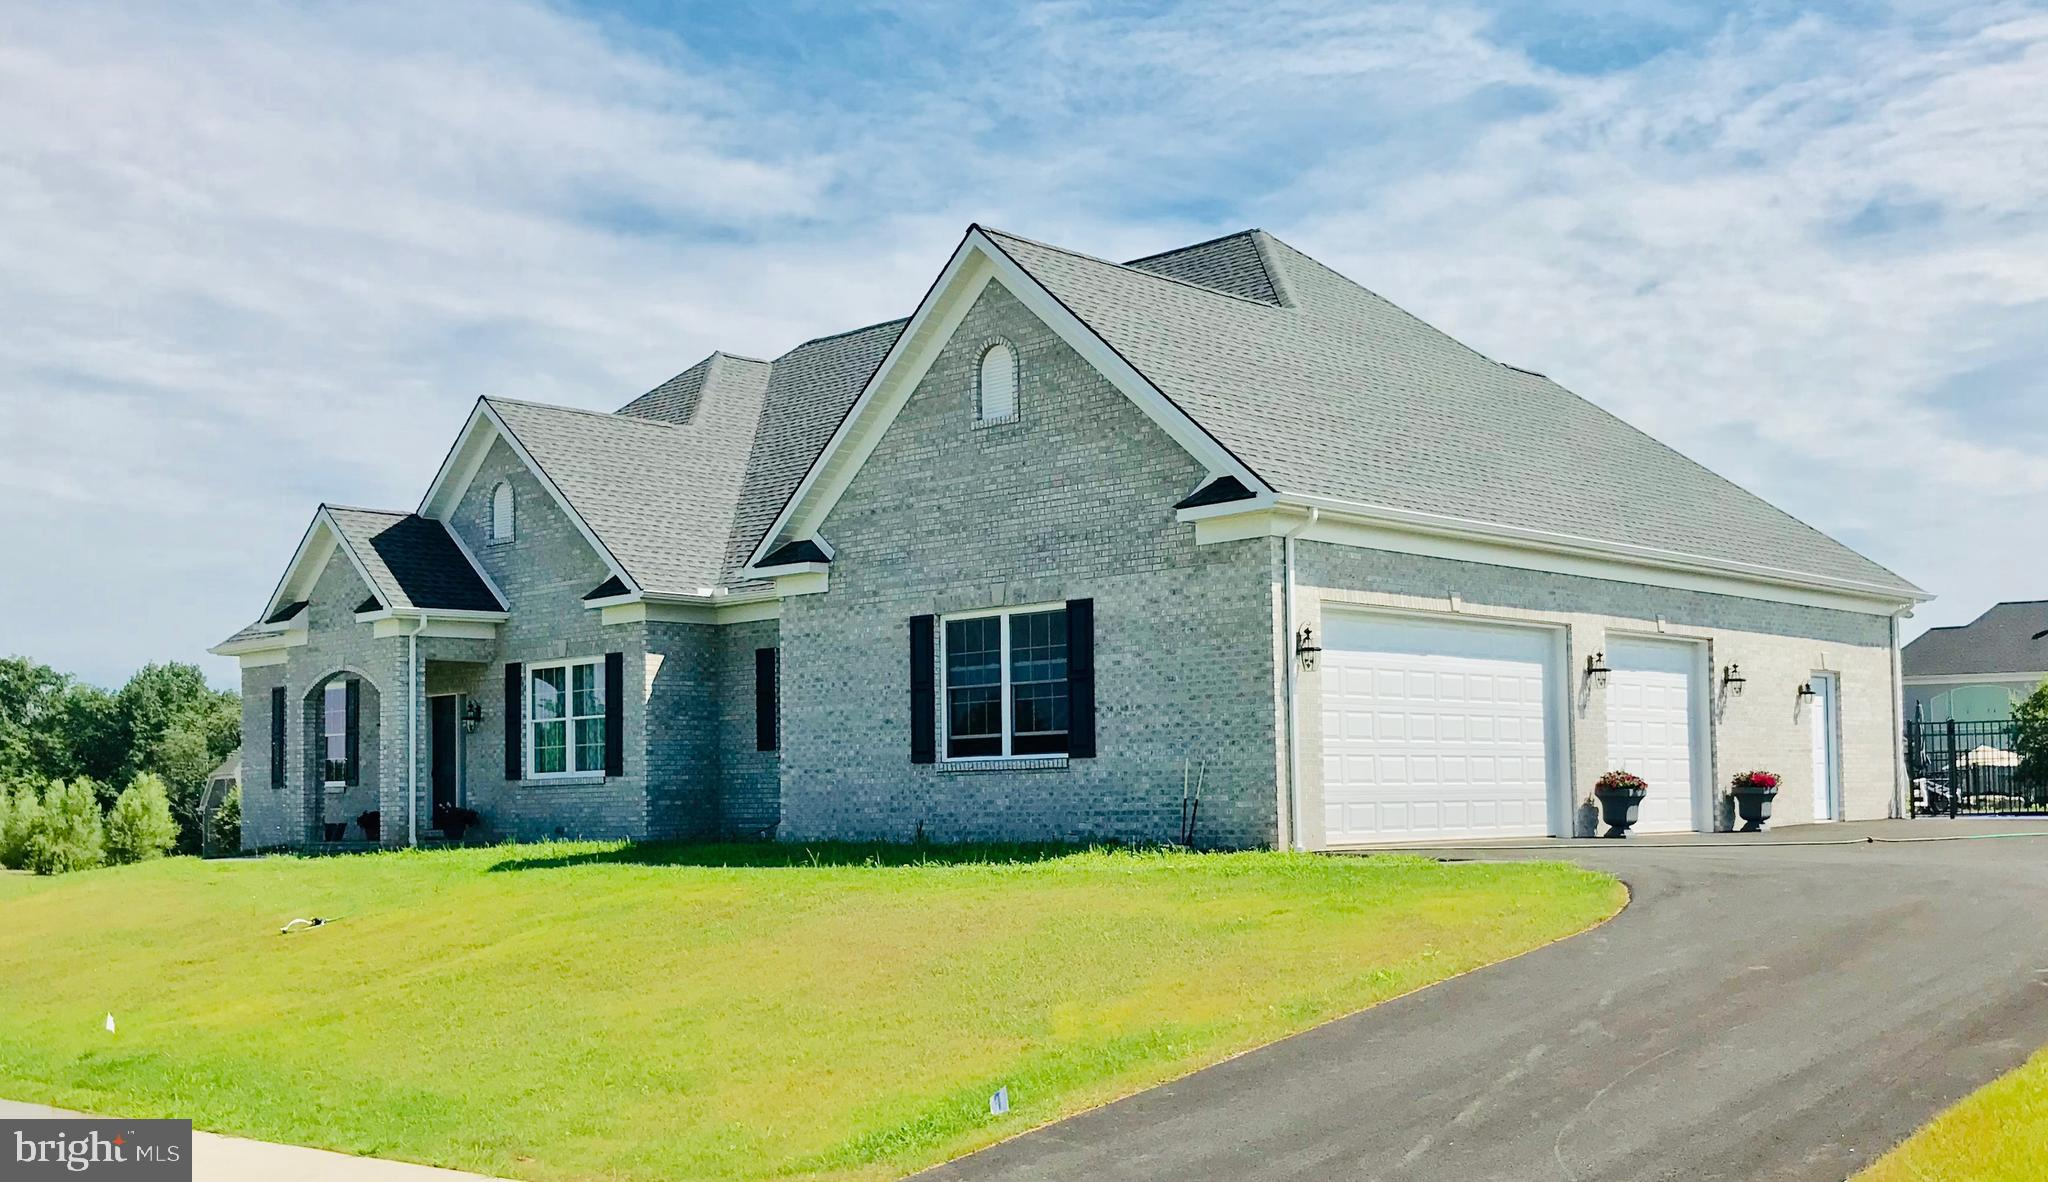 207 HAUER TERRACE, SPRING GROVE, PA 17362